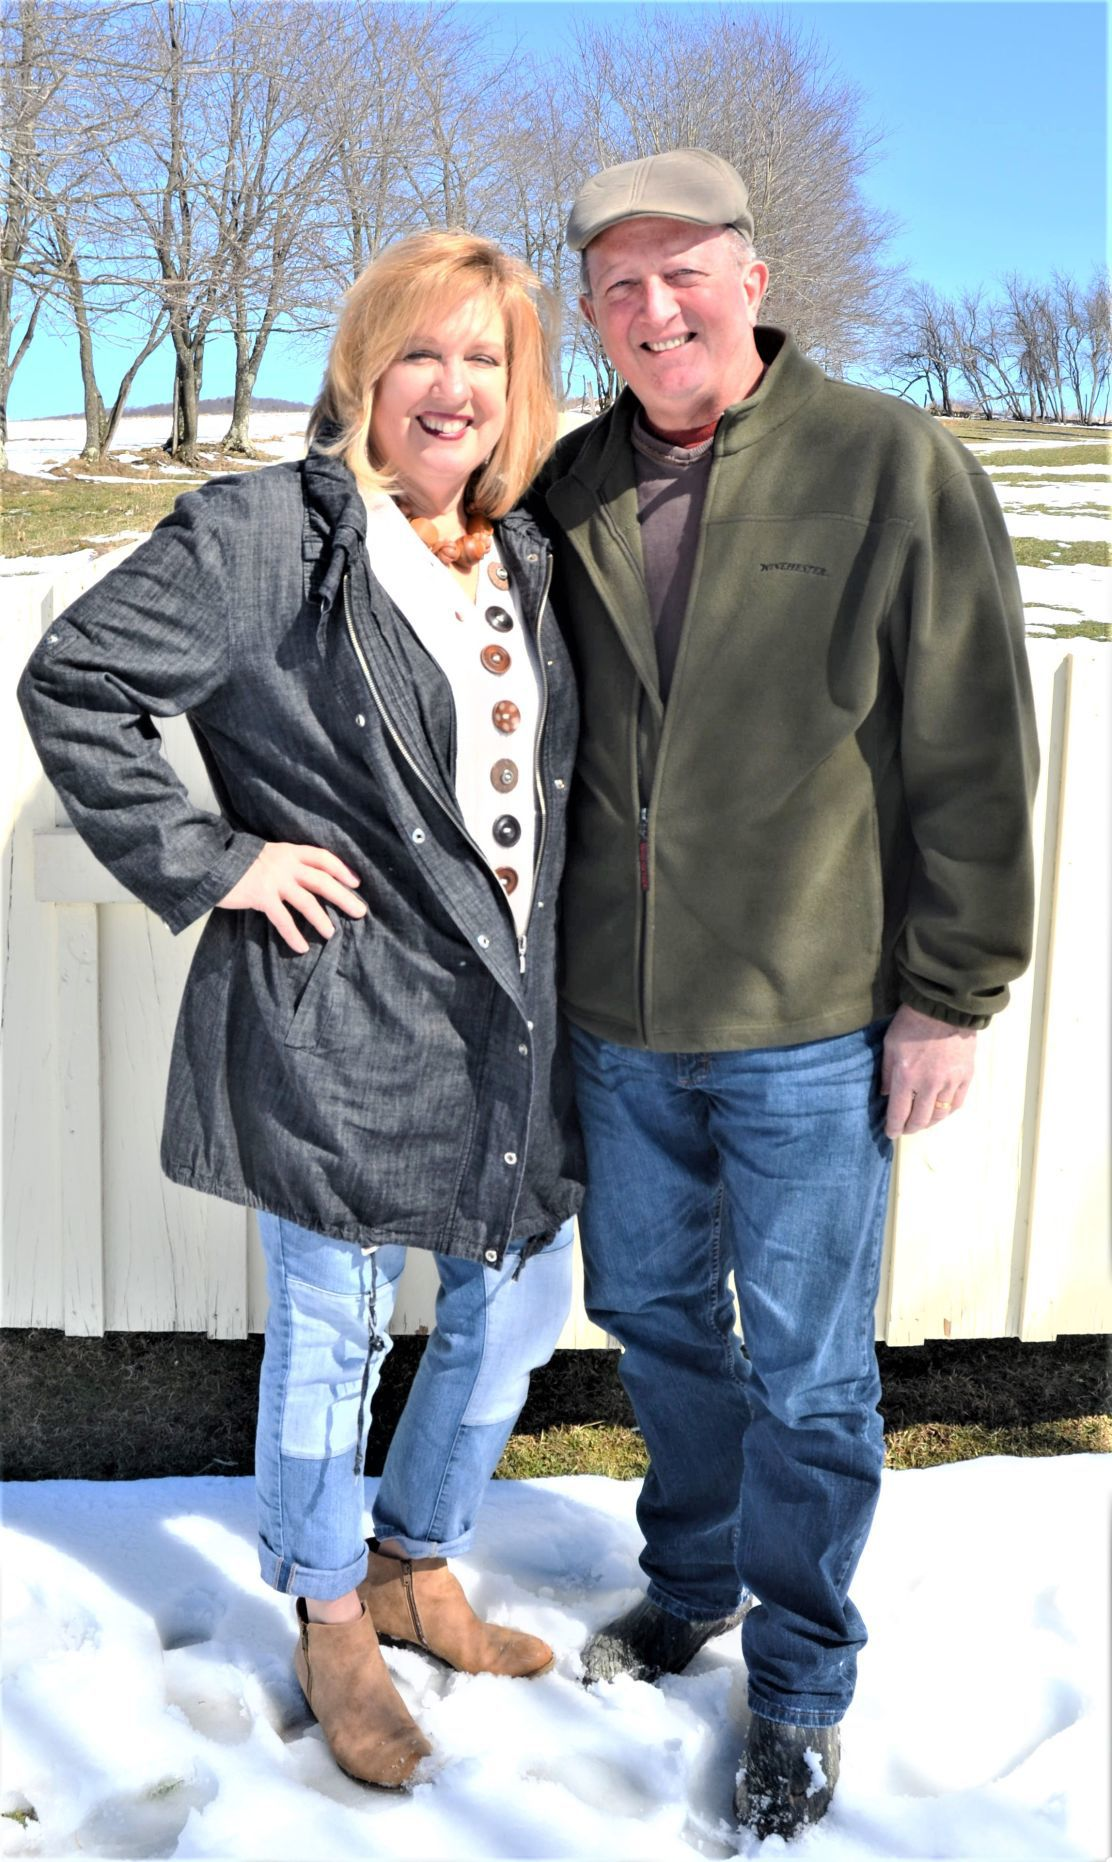 Cove Pastures serves as hub of several ventures for Yoder couple